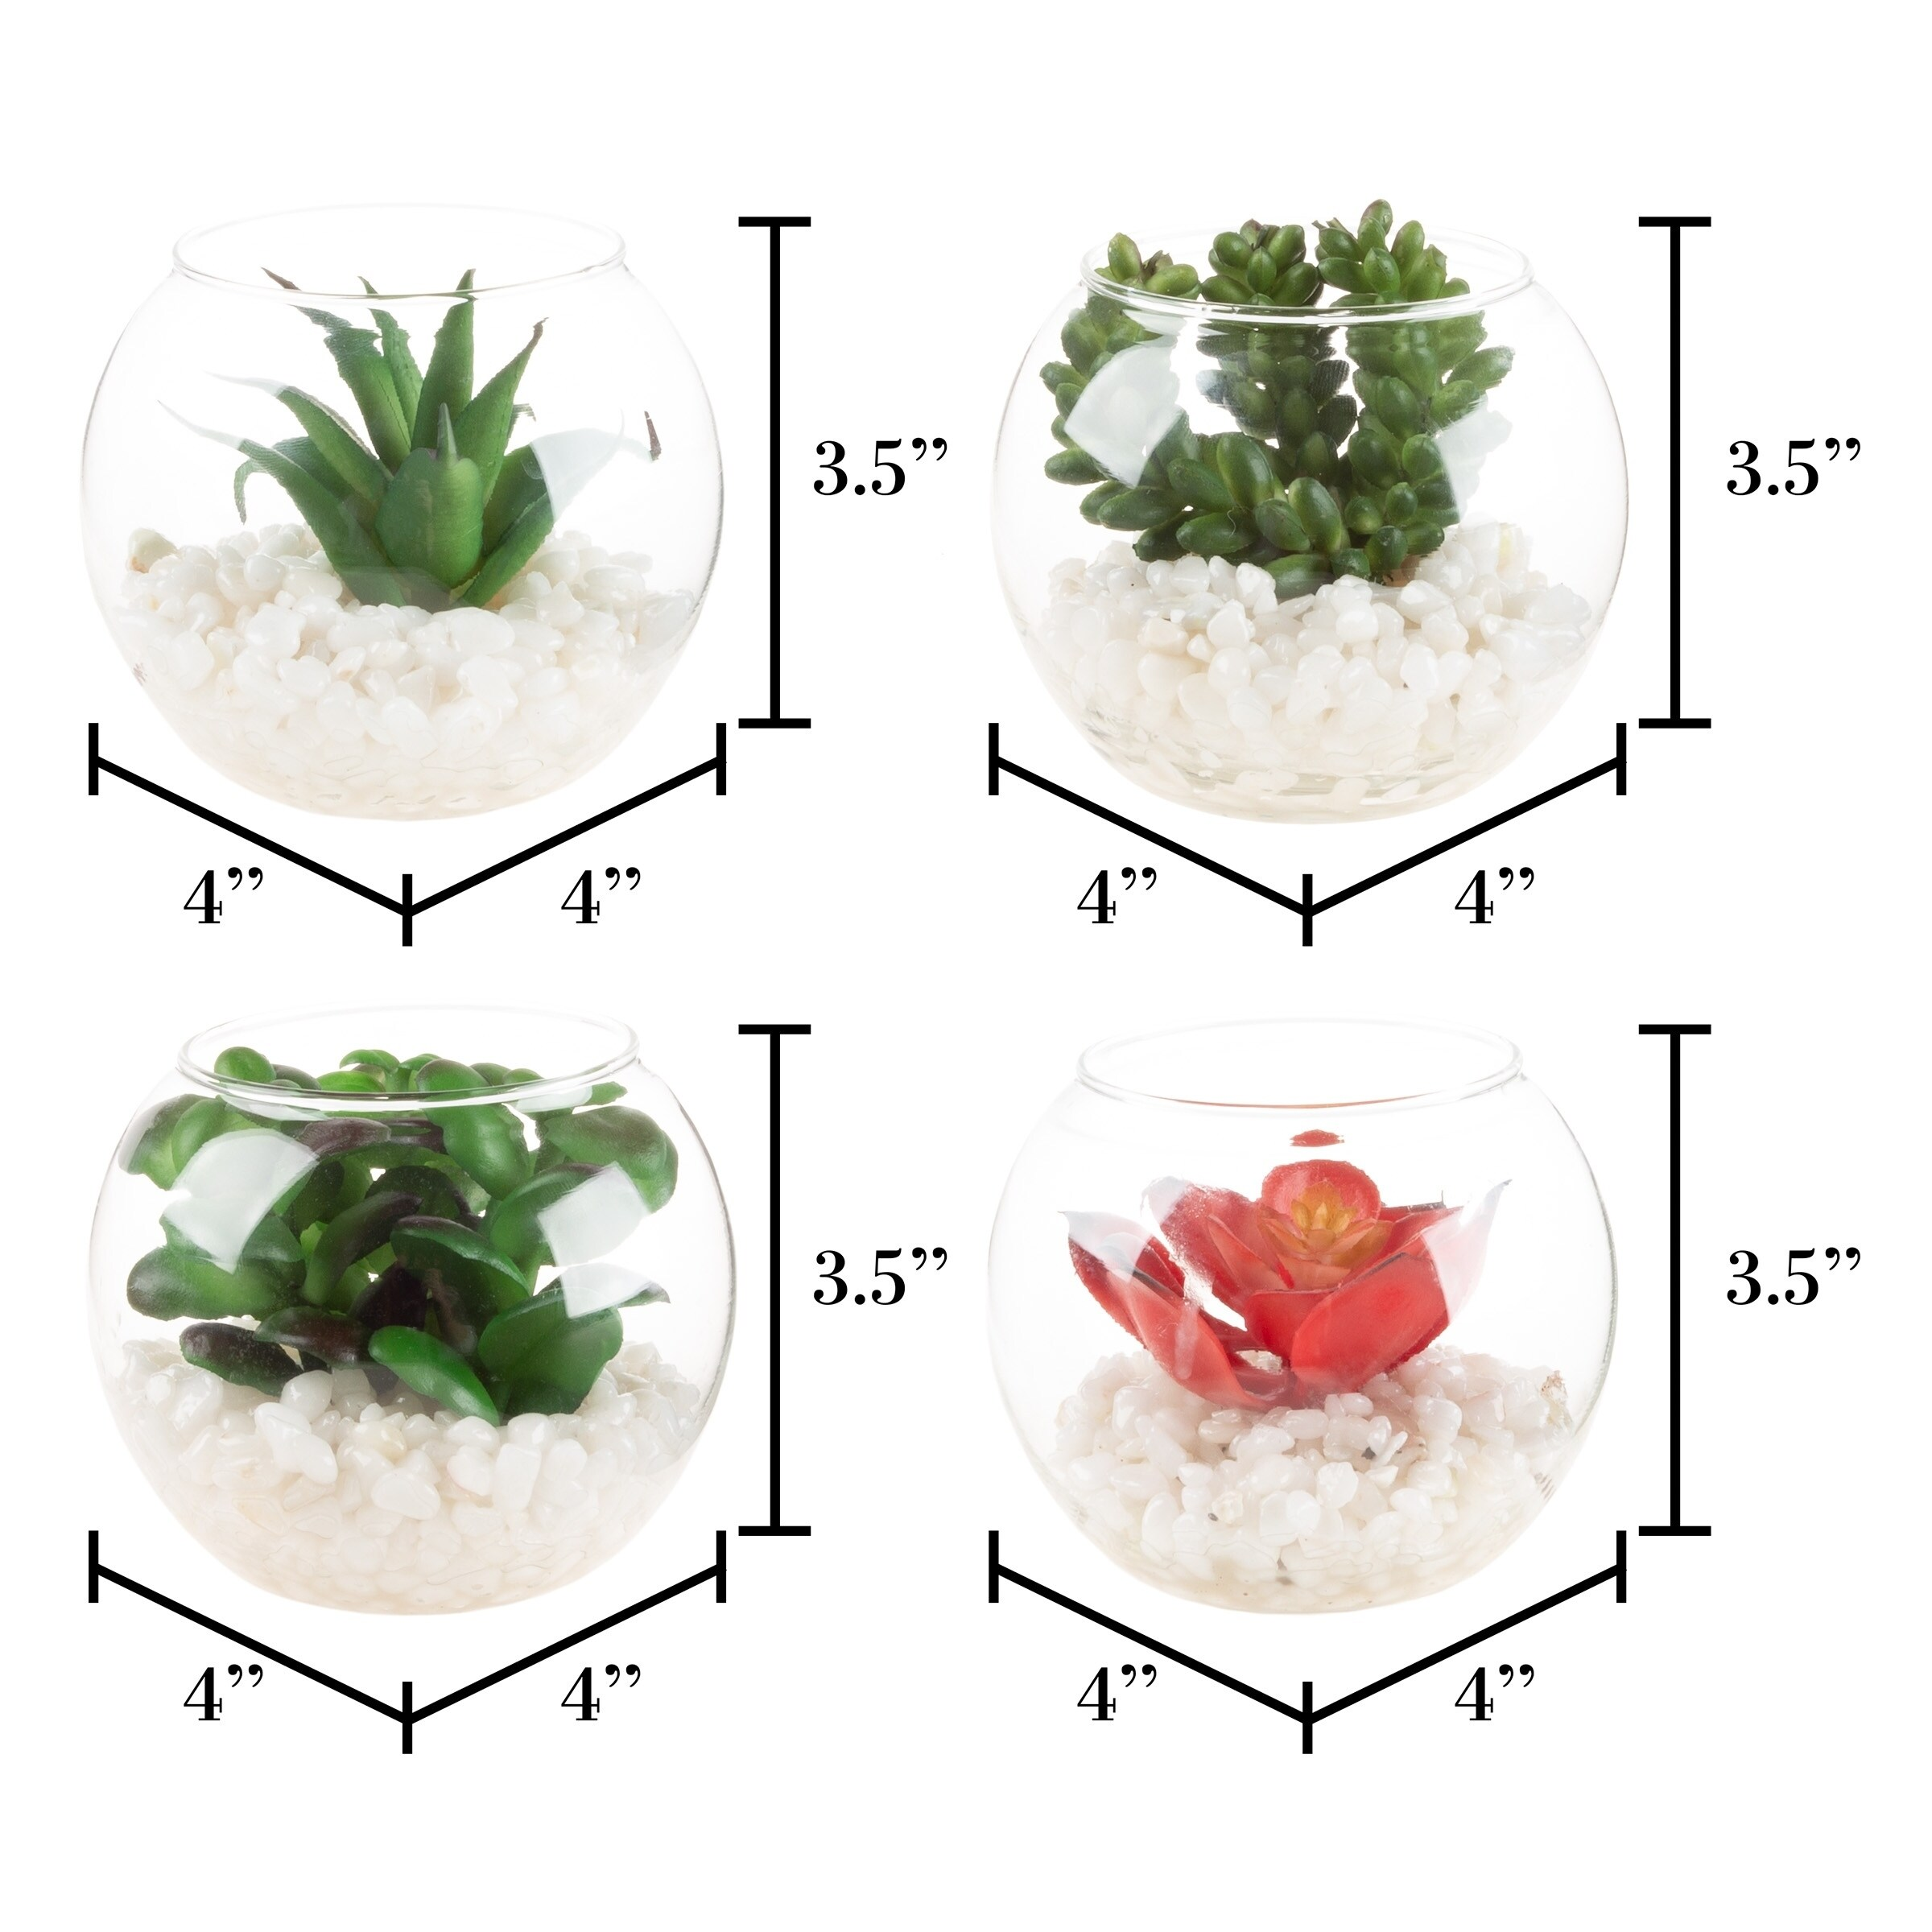 Faux Succulents Set Of 4 Assorted Lifelike Plastic Greenery Arrangements In Glass Vases By Pure Garden 3 5 X 3 5 X 4 Overstock 28988034